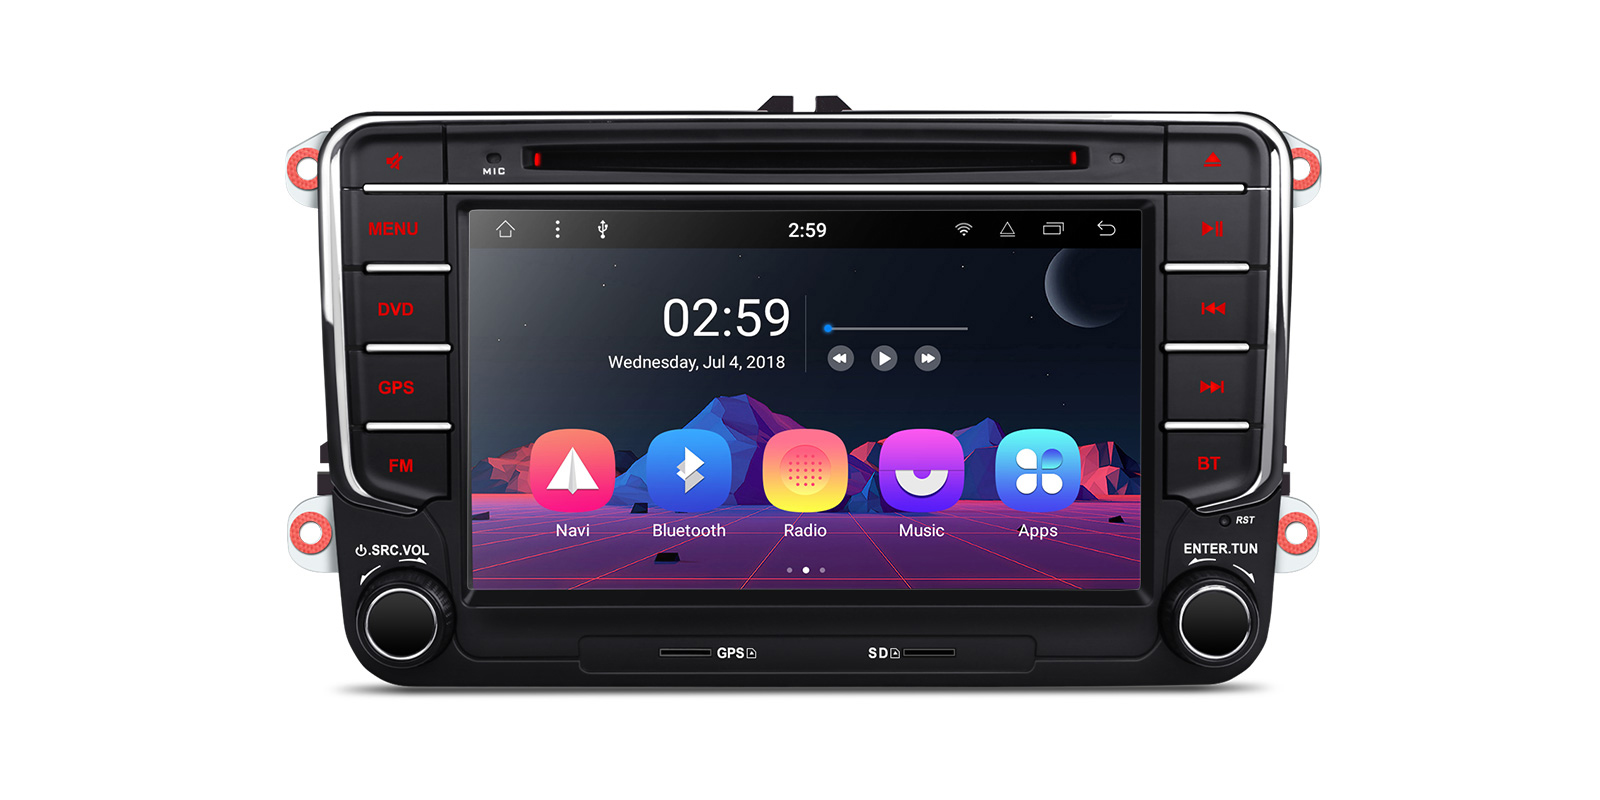 XTRONS 10.1 Inch Car Stereo Head Unit Android 7.1 In-Dash 16G ROM Multimedia Video Player Support Bluetooth 5.0 OBD2 DVR Full RCA Output WiFi 4G GPS fits for Skoda Octavia